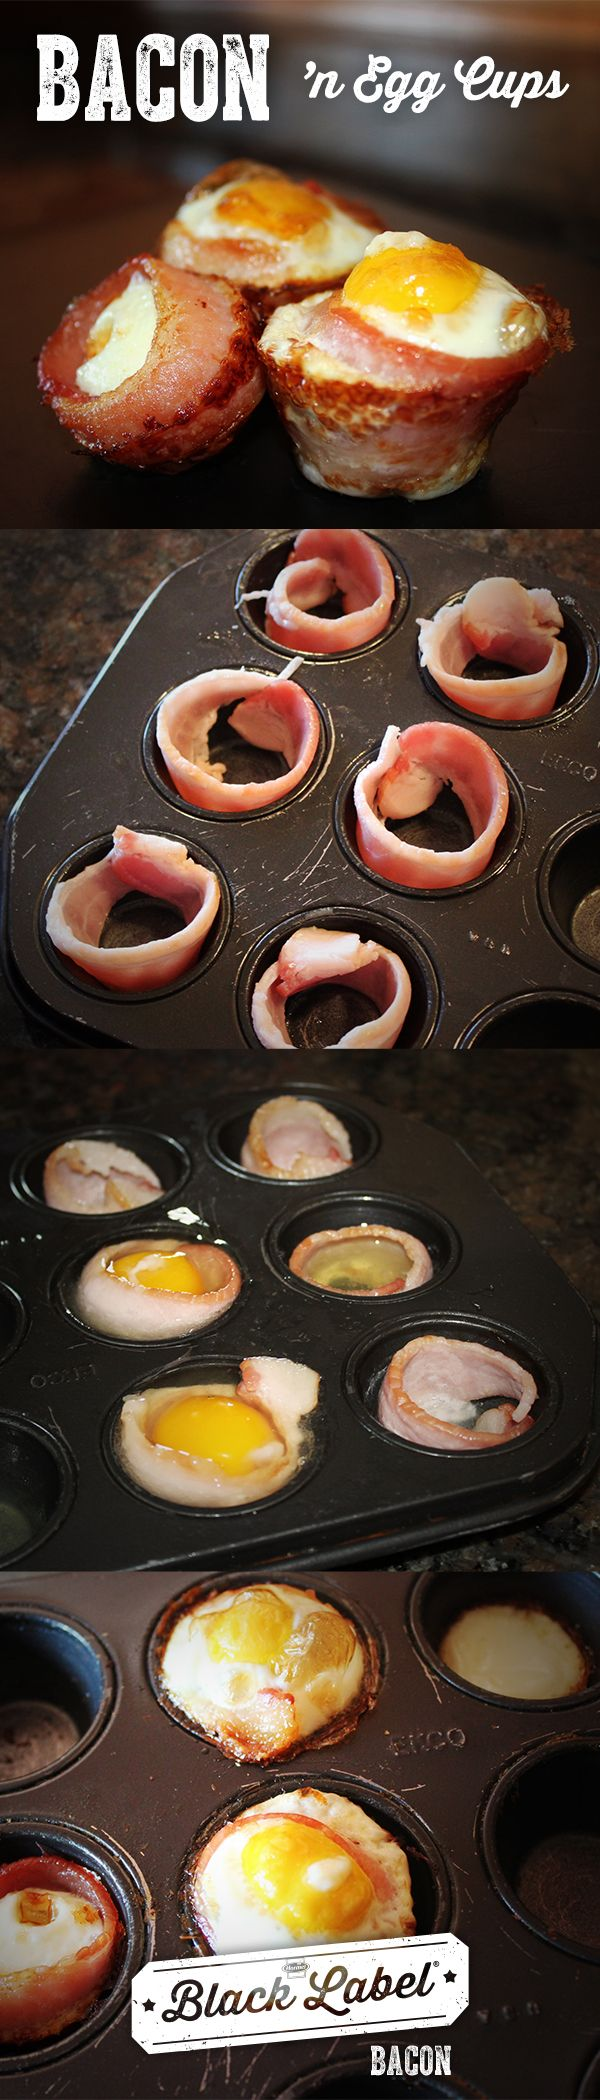 Bacon 'n Egg Cups | How-to | How to add eggs to your bacon. | Bacon breakfast recipe. | Black Label® Bacon